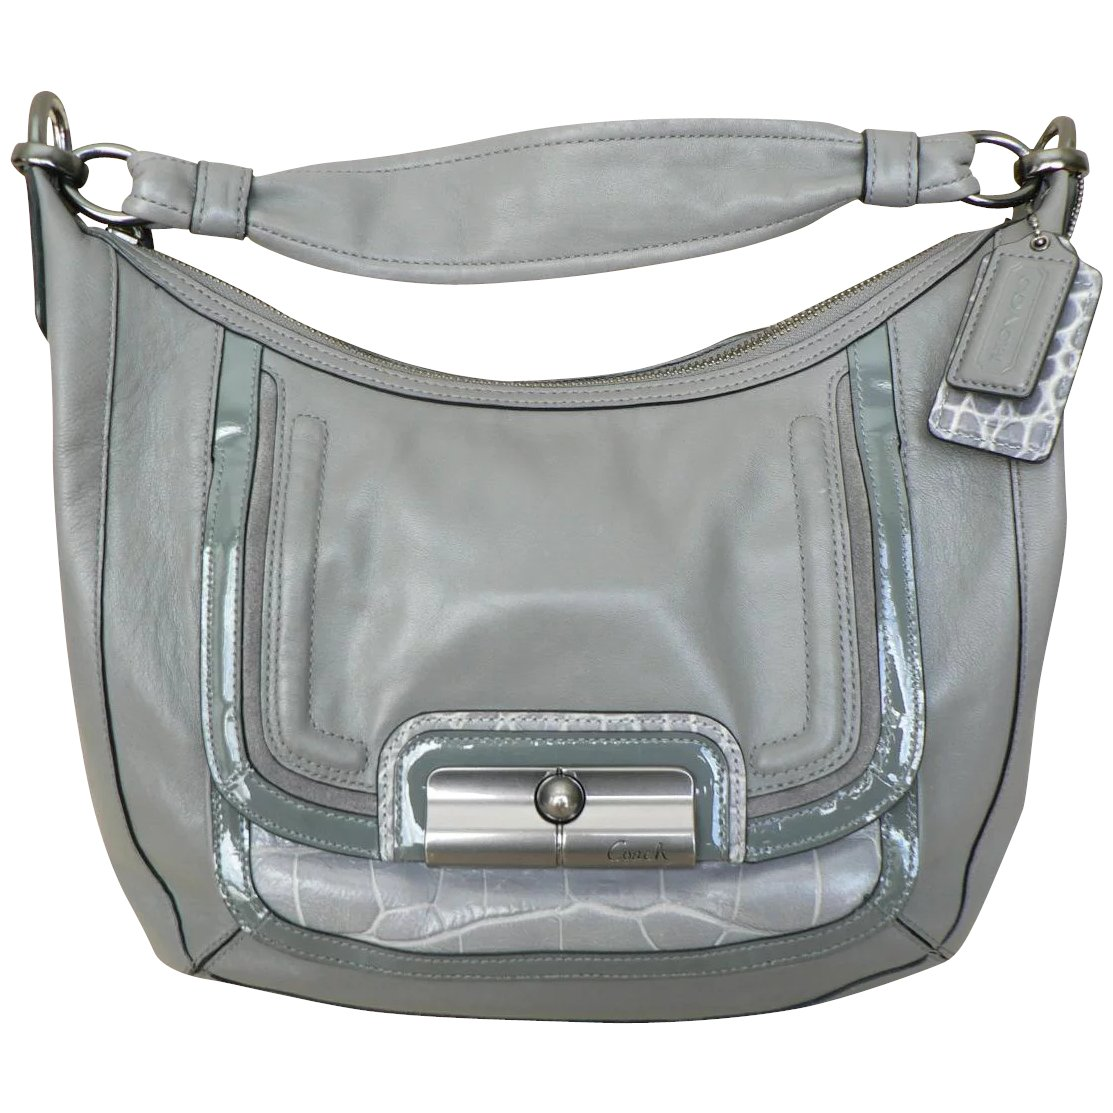 Coach Kristin Style Leather Purse Putty Gray Zip Carryall Shoulder Bag Pristine Condition